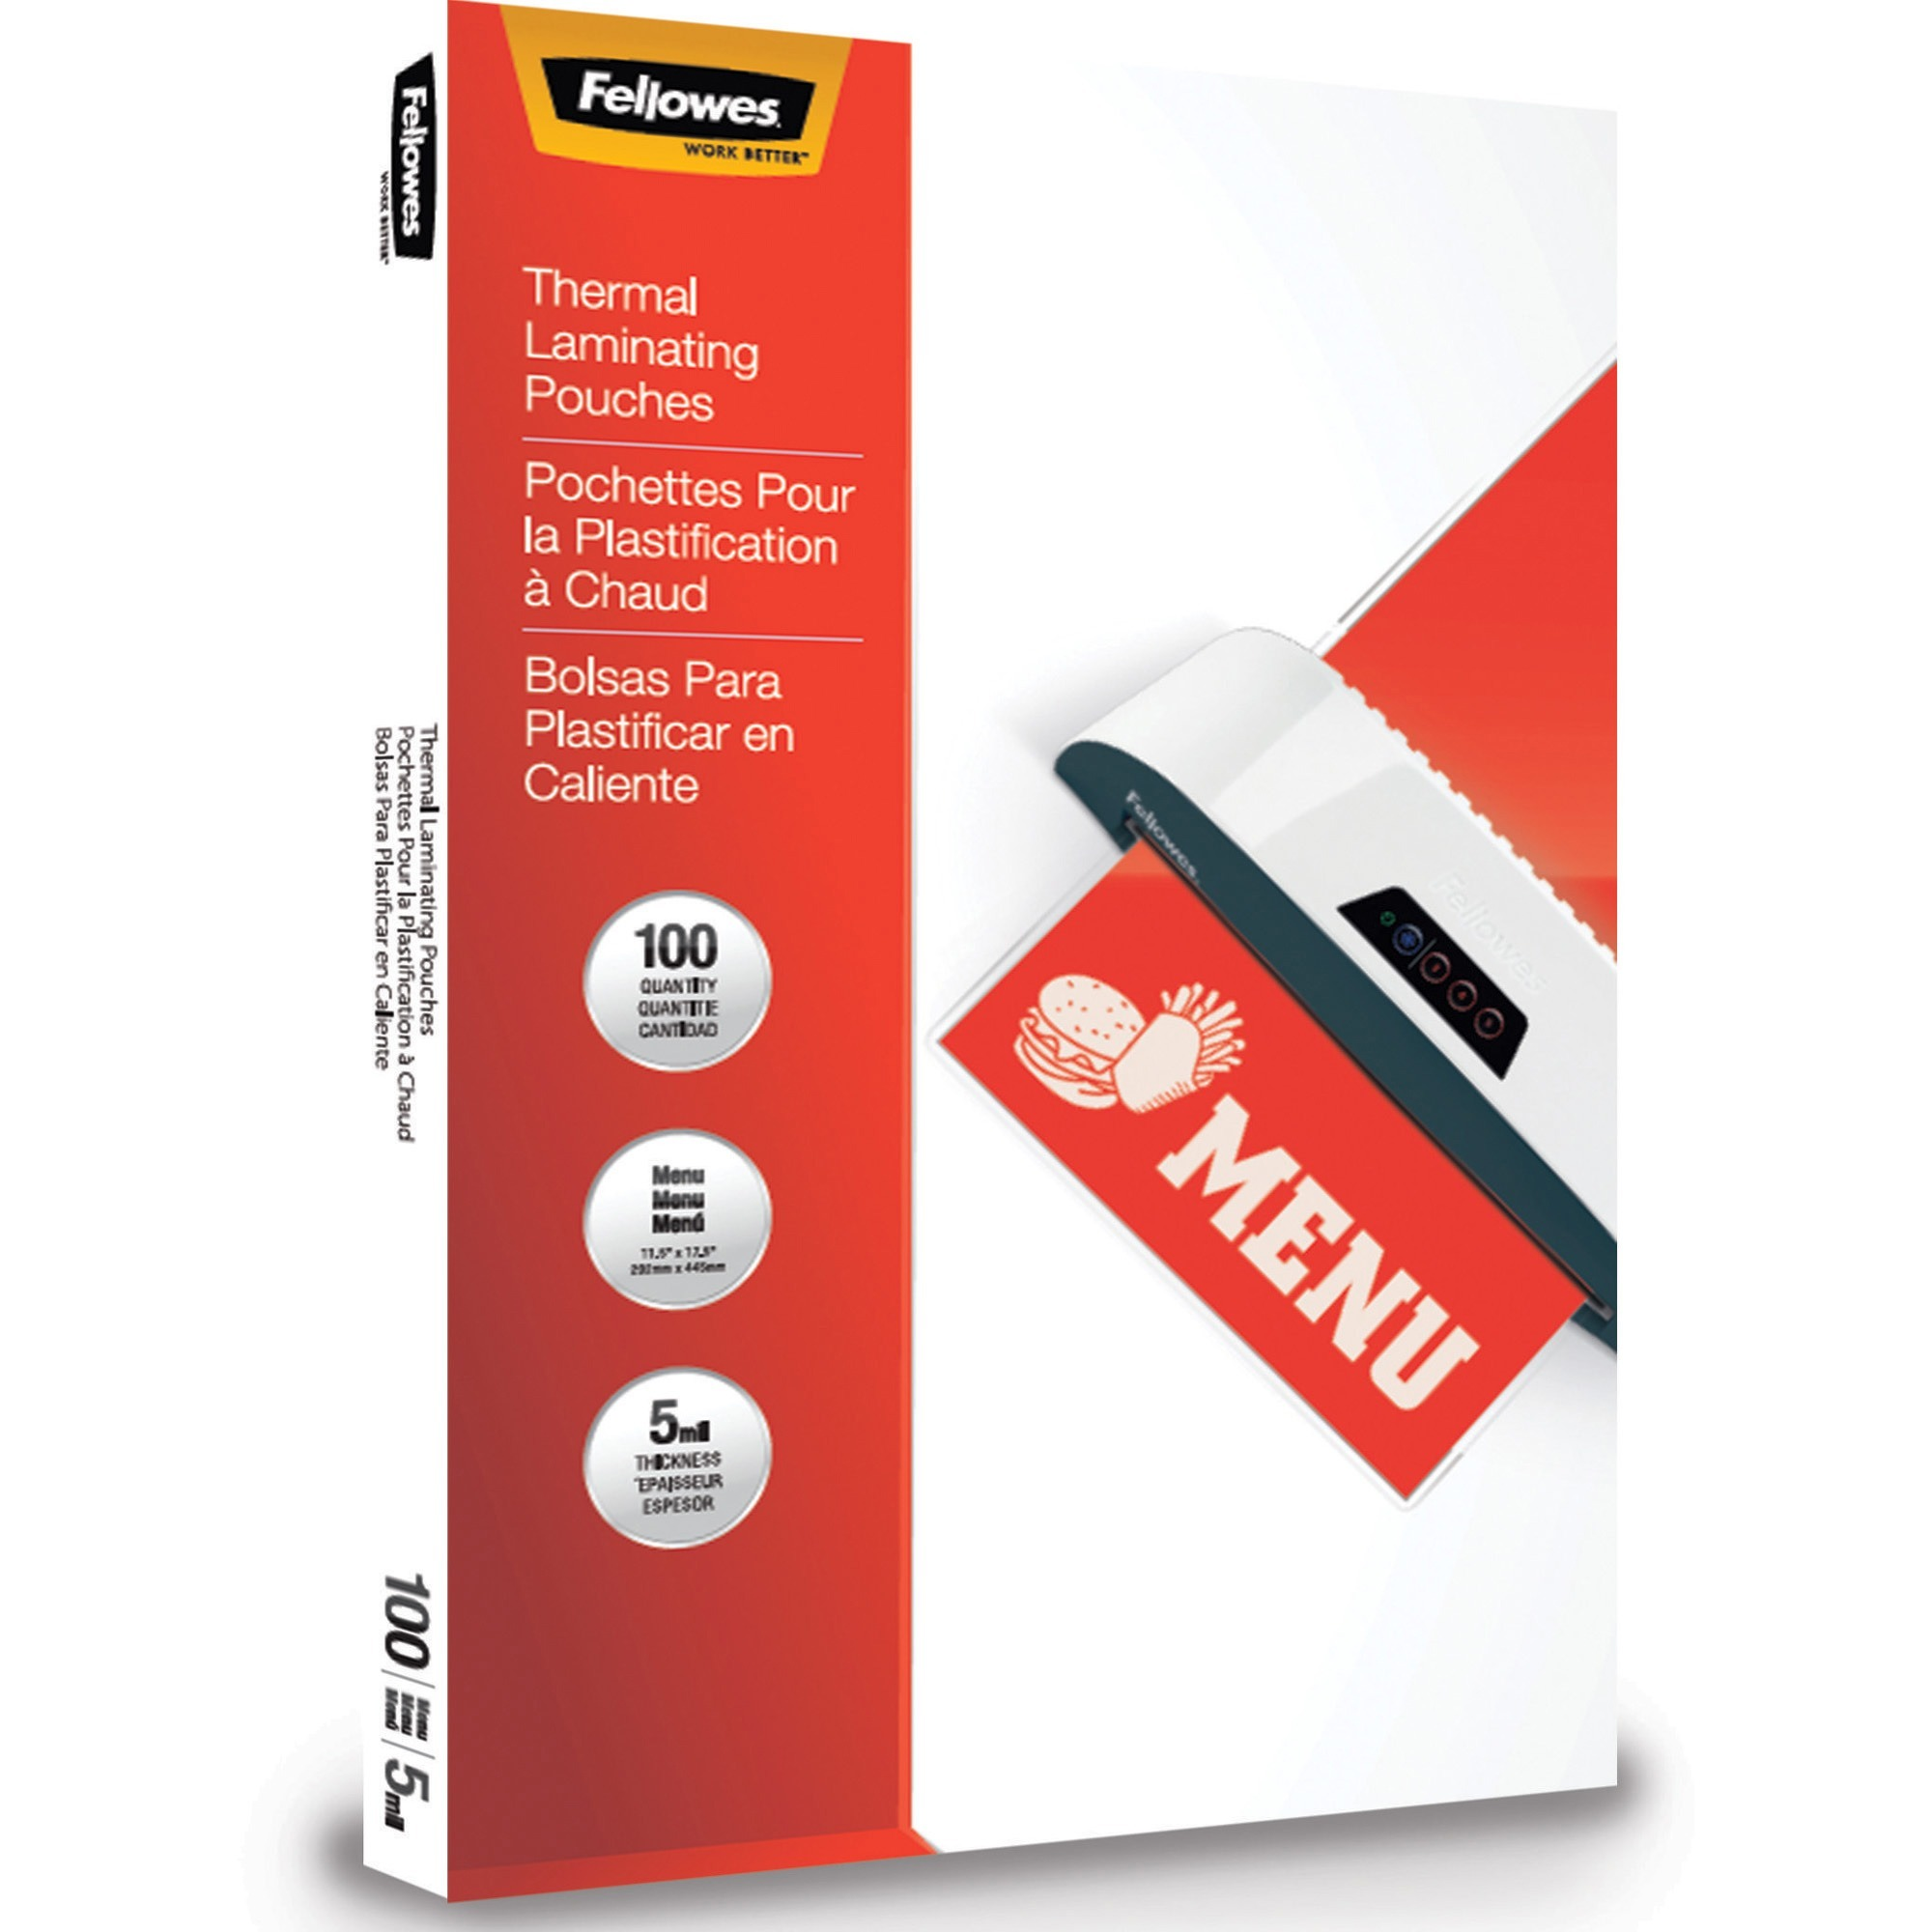 Fellowes, FEL5746001, Thermal Laminating Pouches - Menu, 5mil, 100 pack, 100 / Pack, Clear